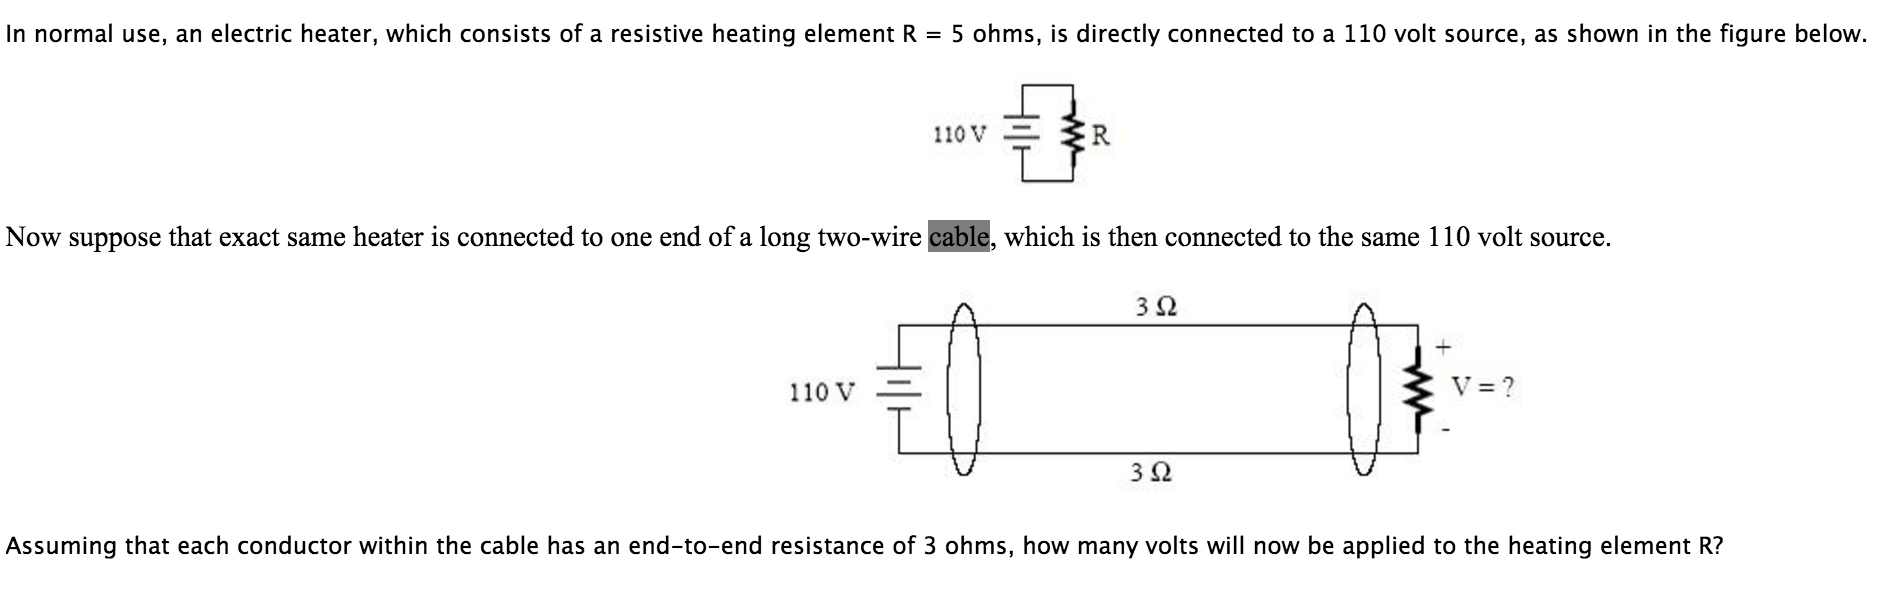 hight resolution of in normal use an electric heater which consists